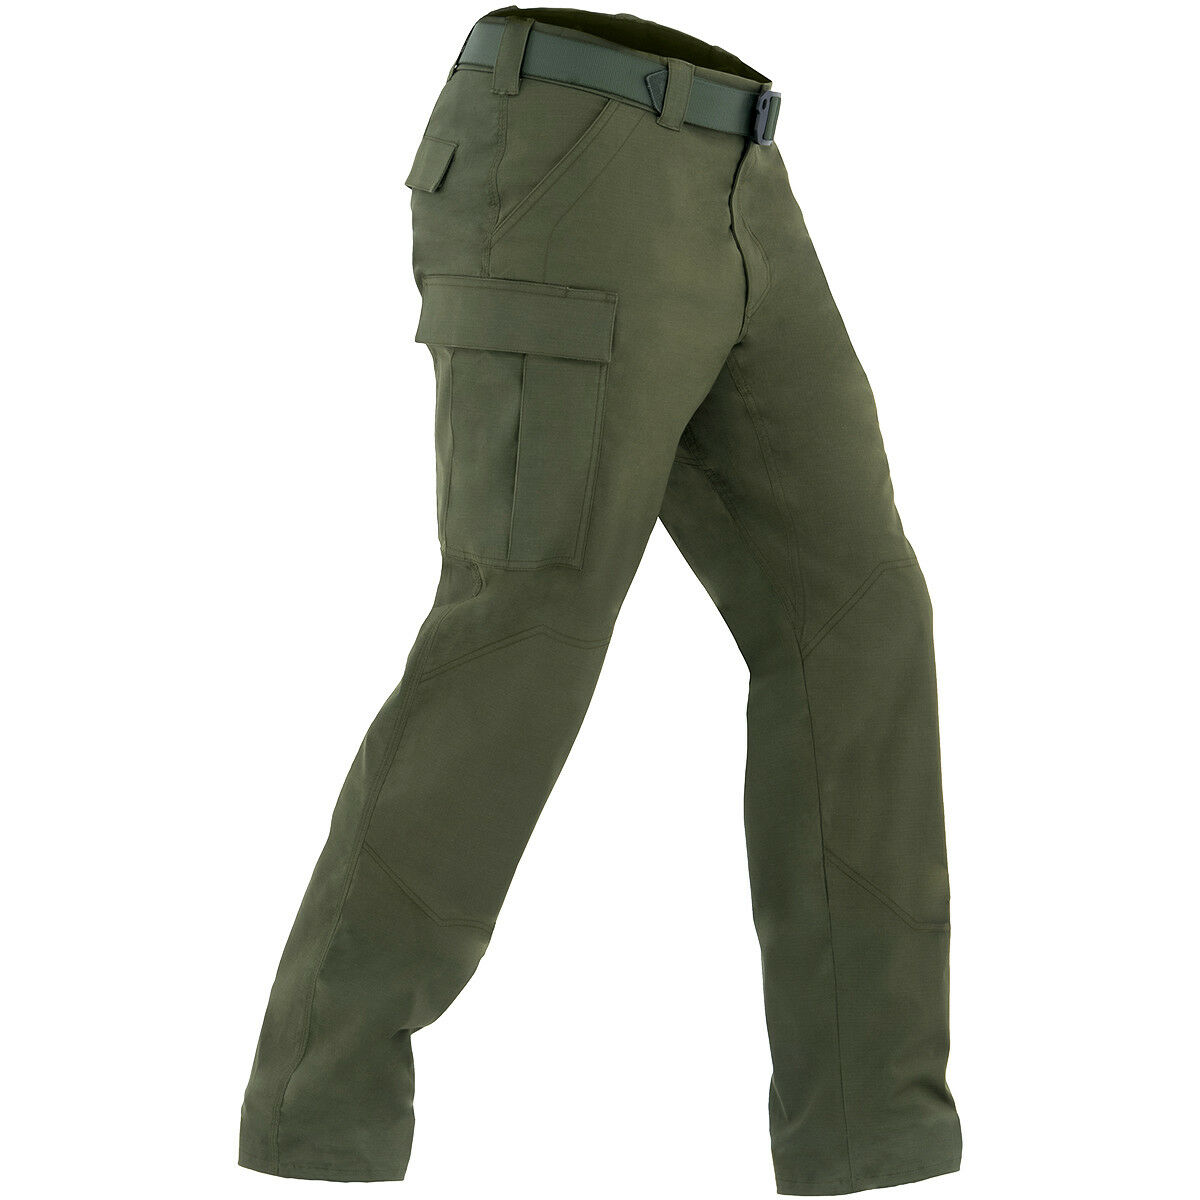 First Tactical Men's Specialist BDU Pants Hunting Hiking Cargo Trousers OD Green